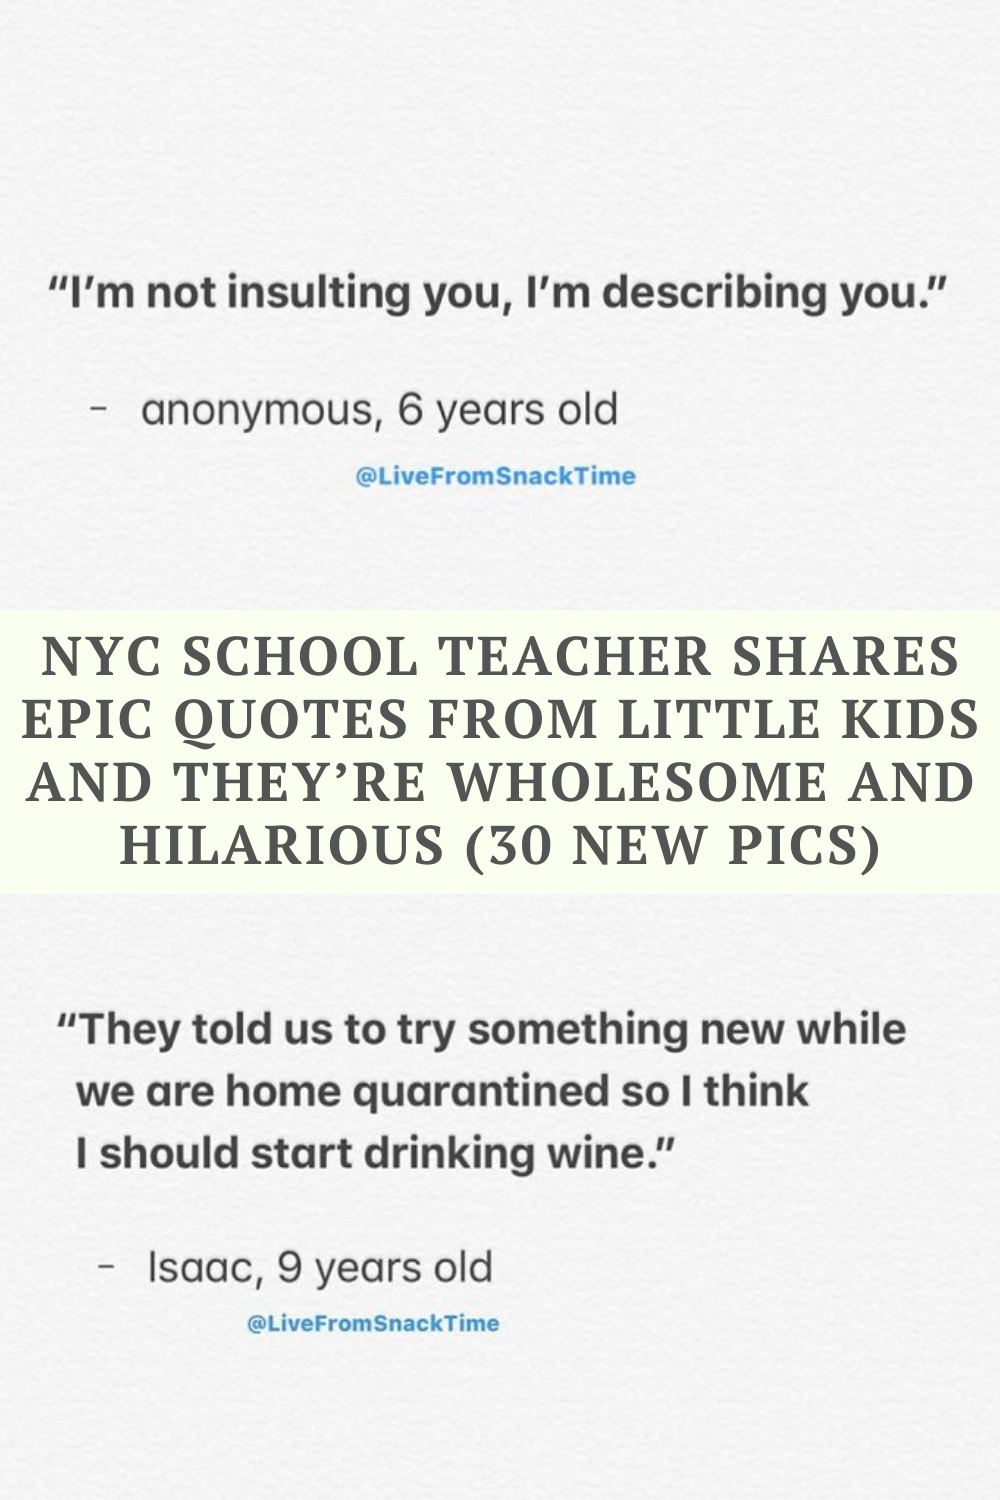 Nyc School Teacher Shares Epic Quotes From Little Kids And They Re Wholesome And Hilarious In 2020 Funny Comedy Epic Quotes Humor